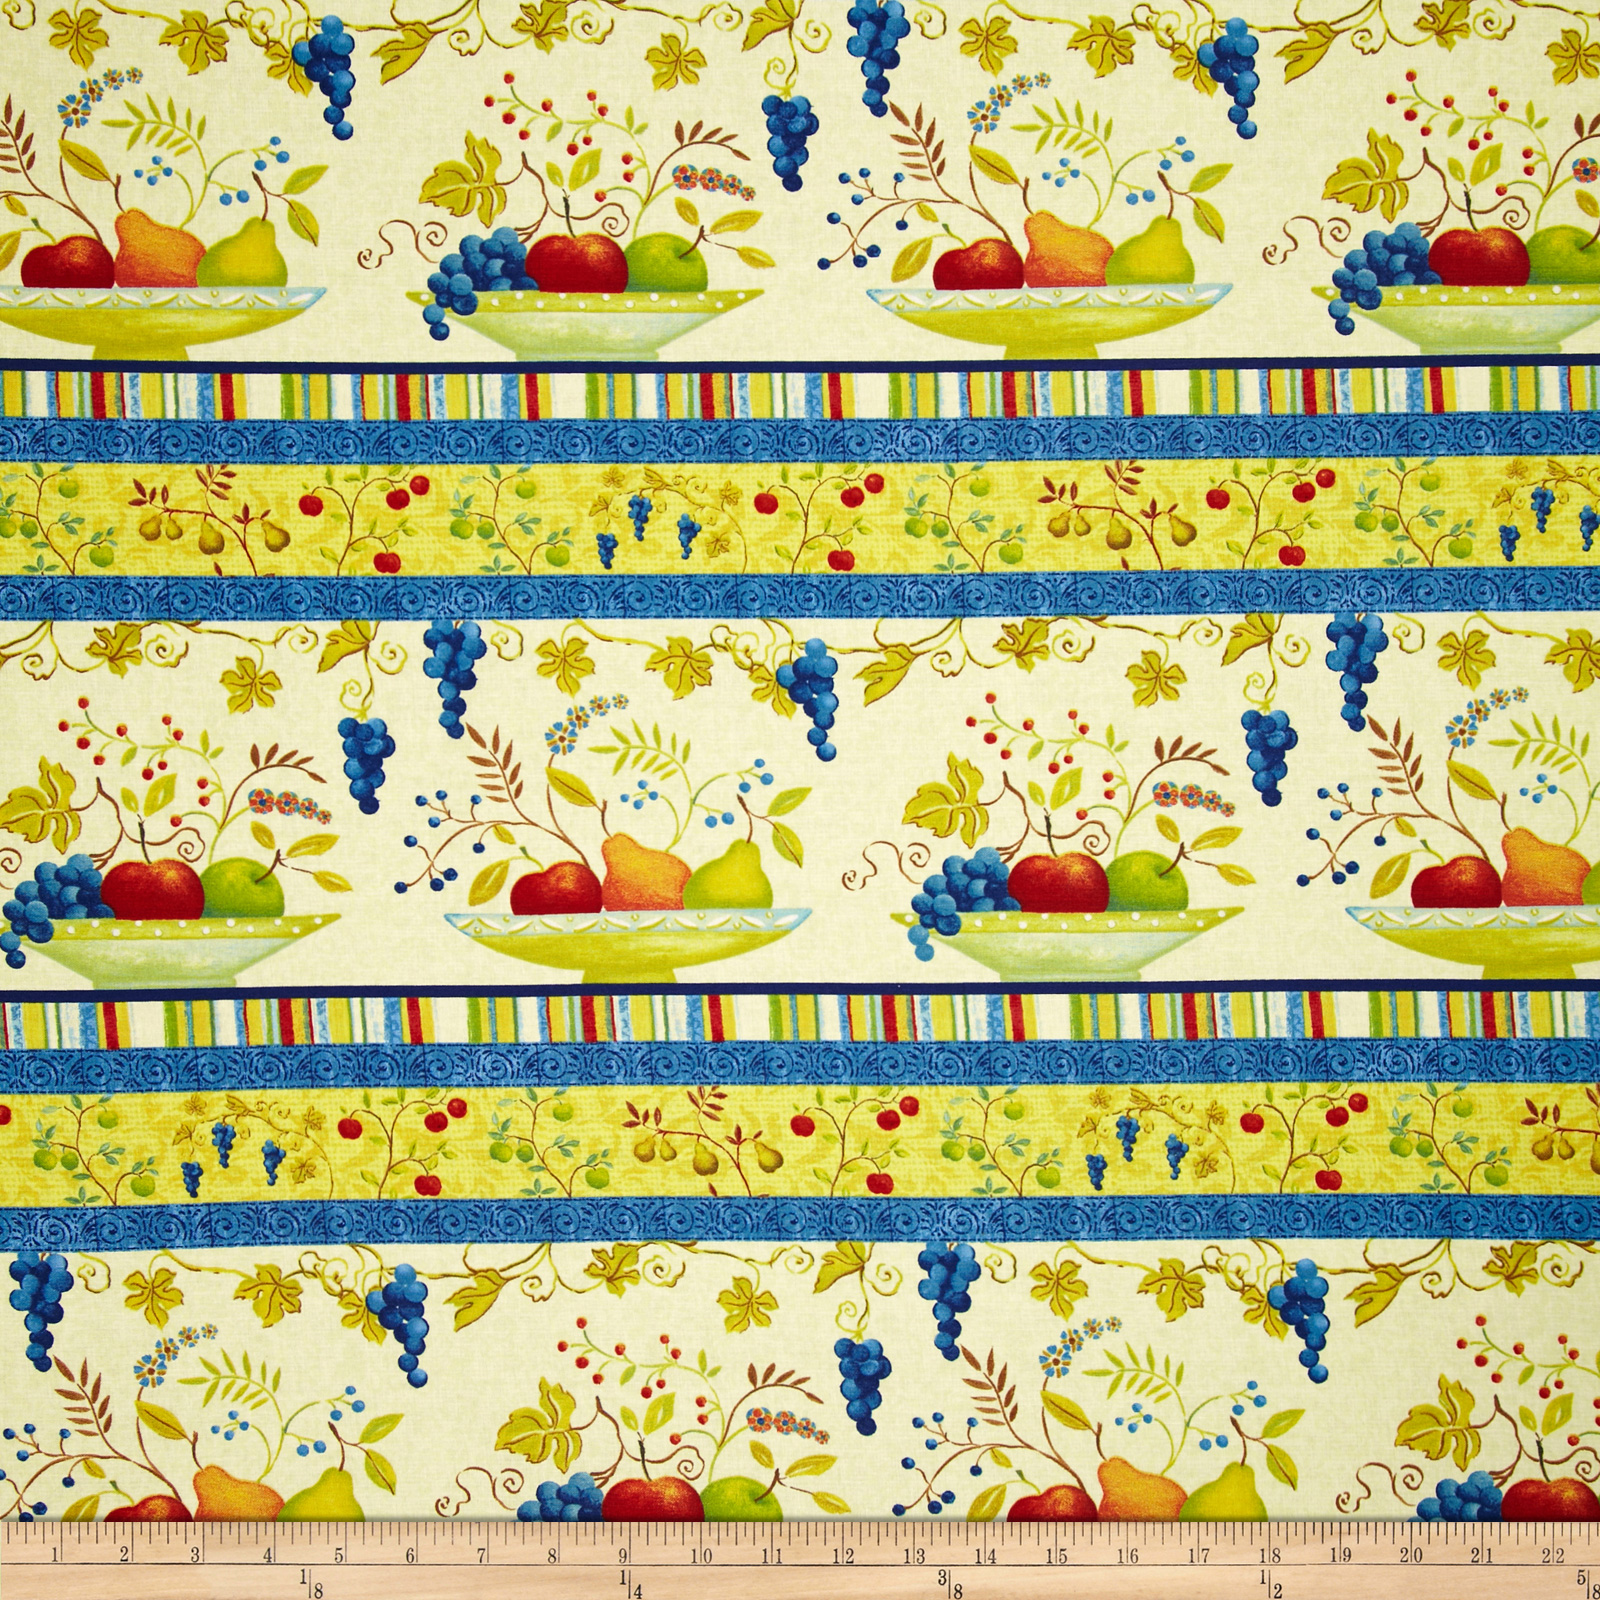 Springtime Garden Fruit Repeating Stripe Cream/Multi Fabric